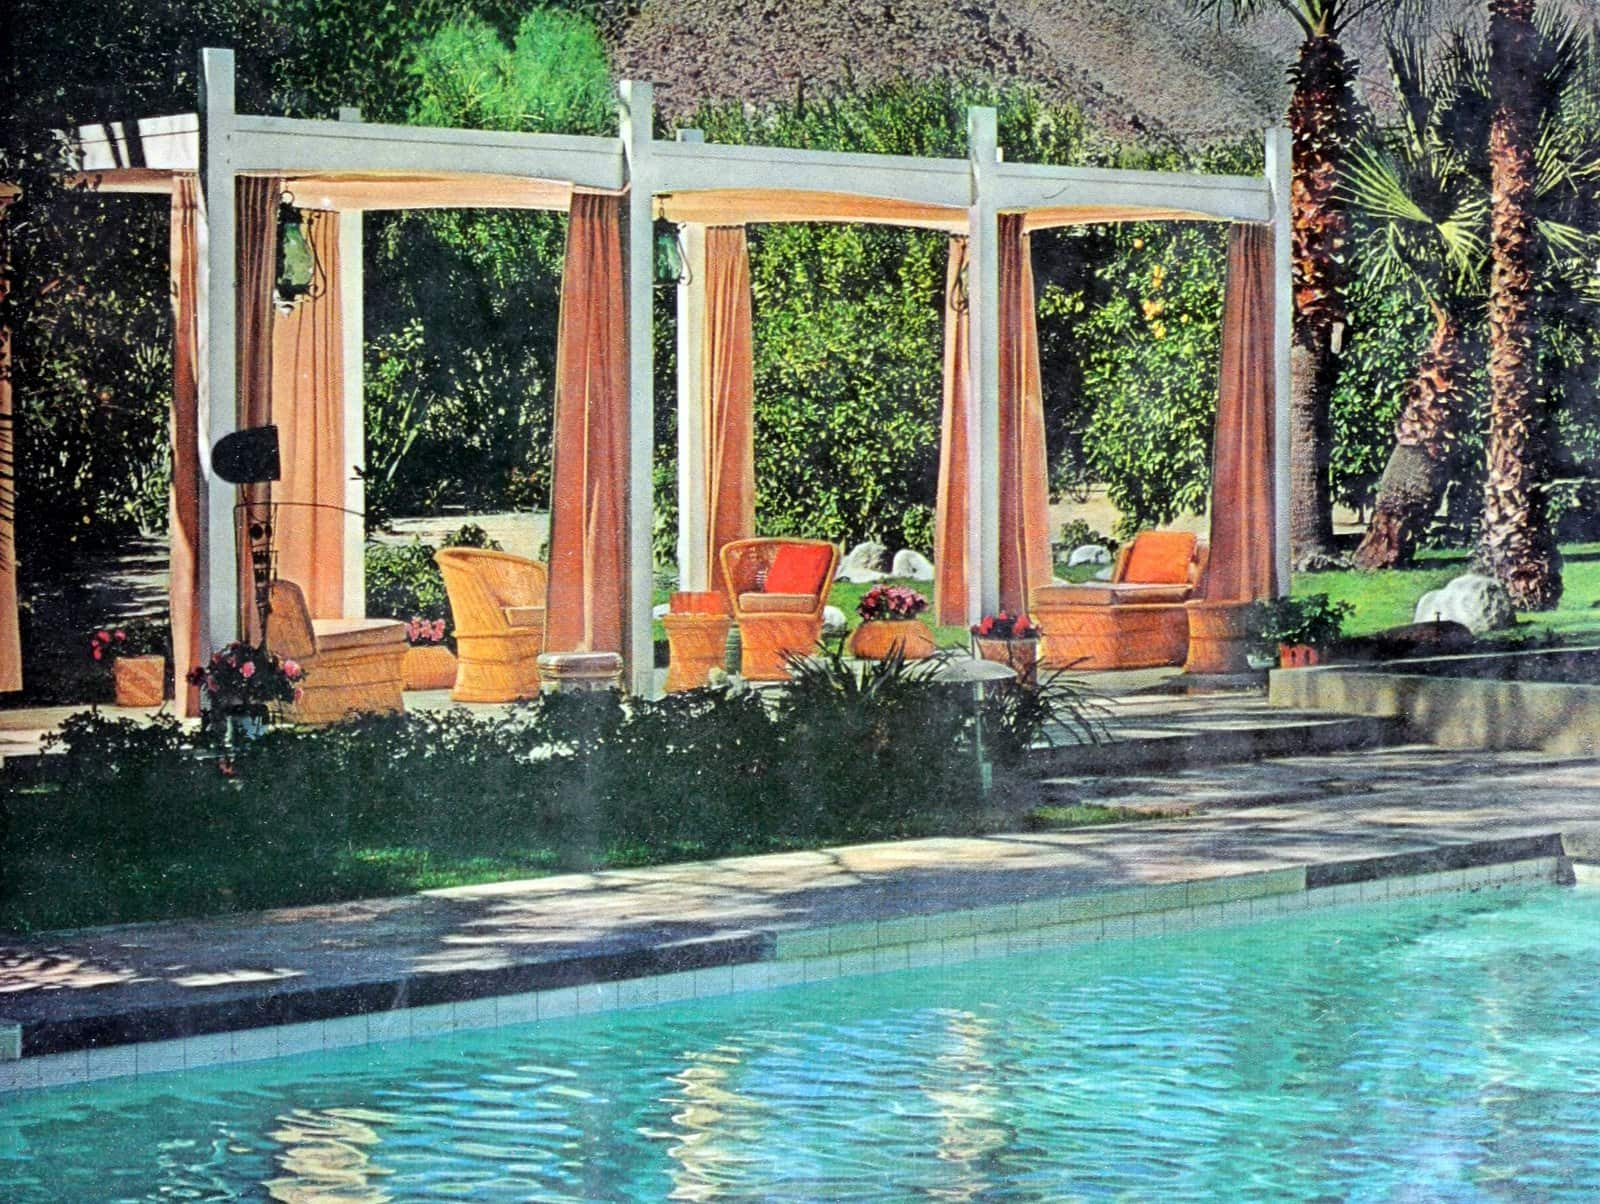 A posh poolside retreat in Palm Springs, California (1969)